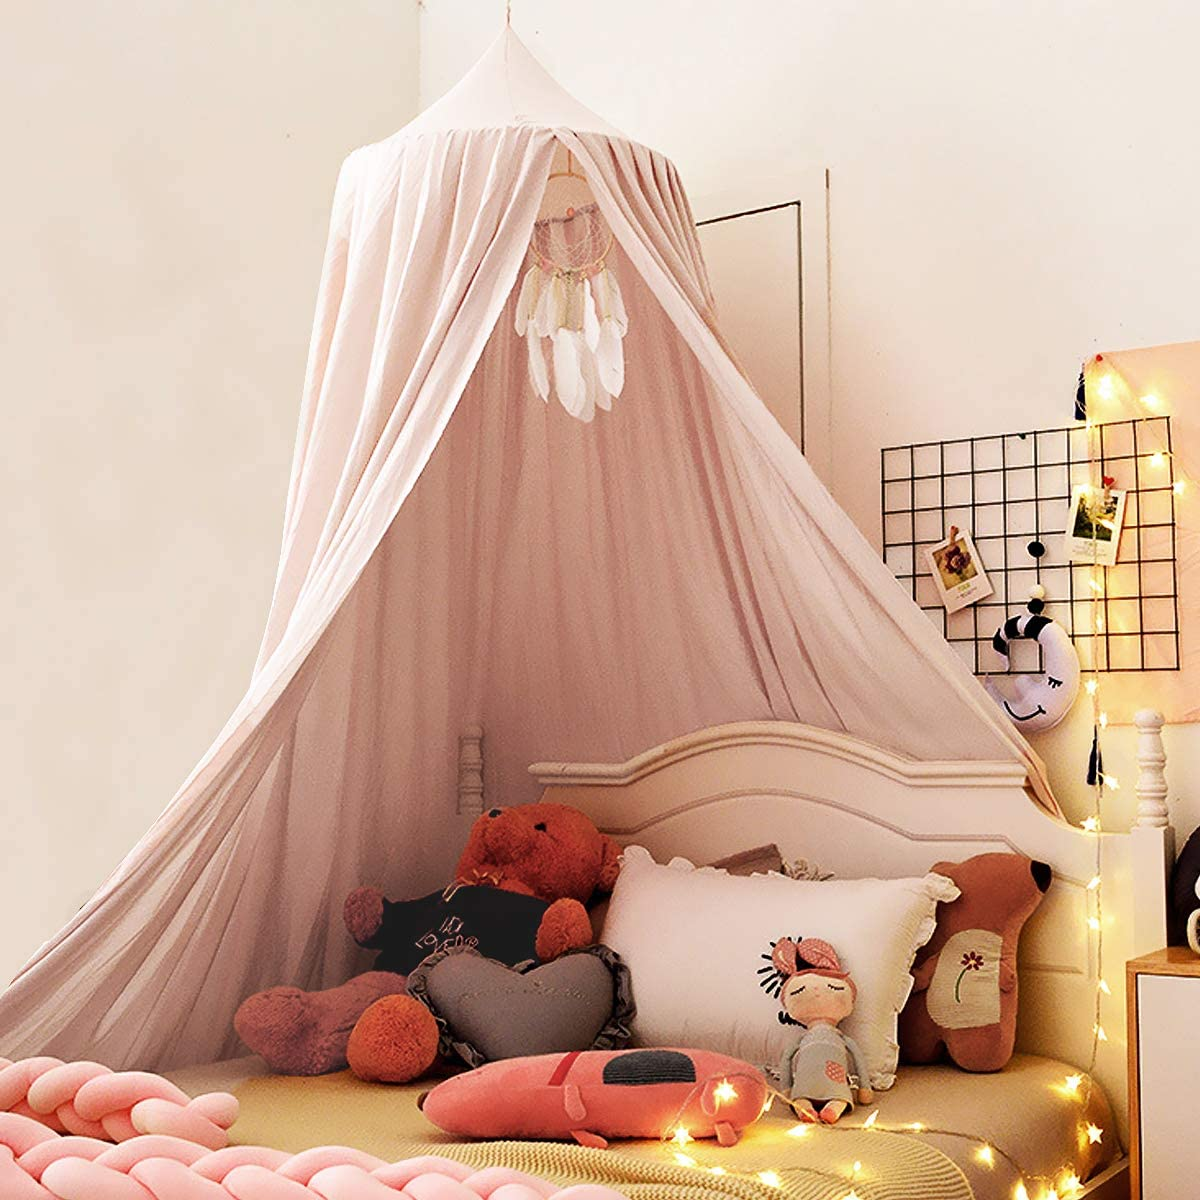 Kertnic Decor Canopy for Kids Bed, Soft Smooth Playing Tent Canopy Girls Room Decoration Princess Castle, Dreamy Mosquito Net Bedding, Children Reading Nook Canopies in Home (Pink)